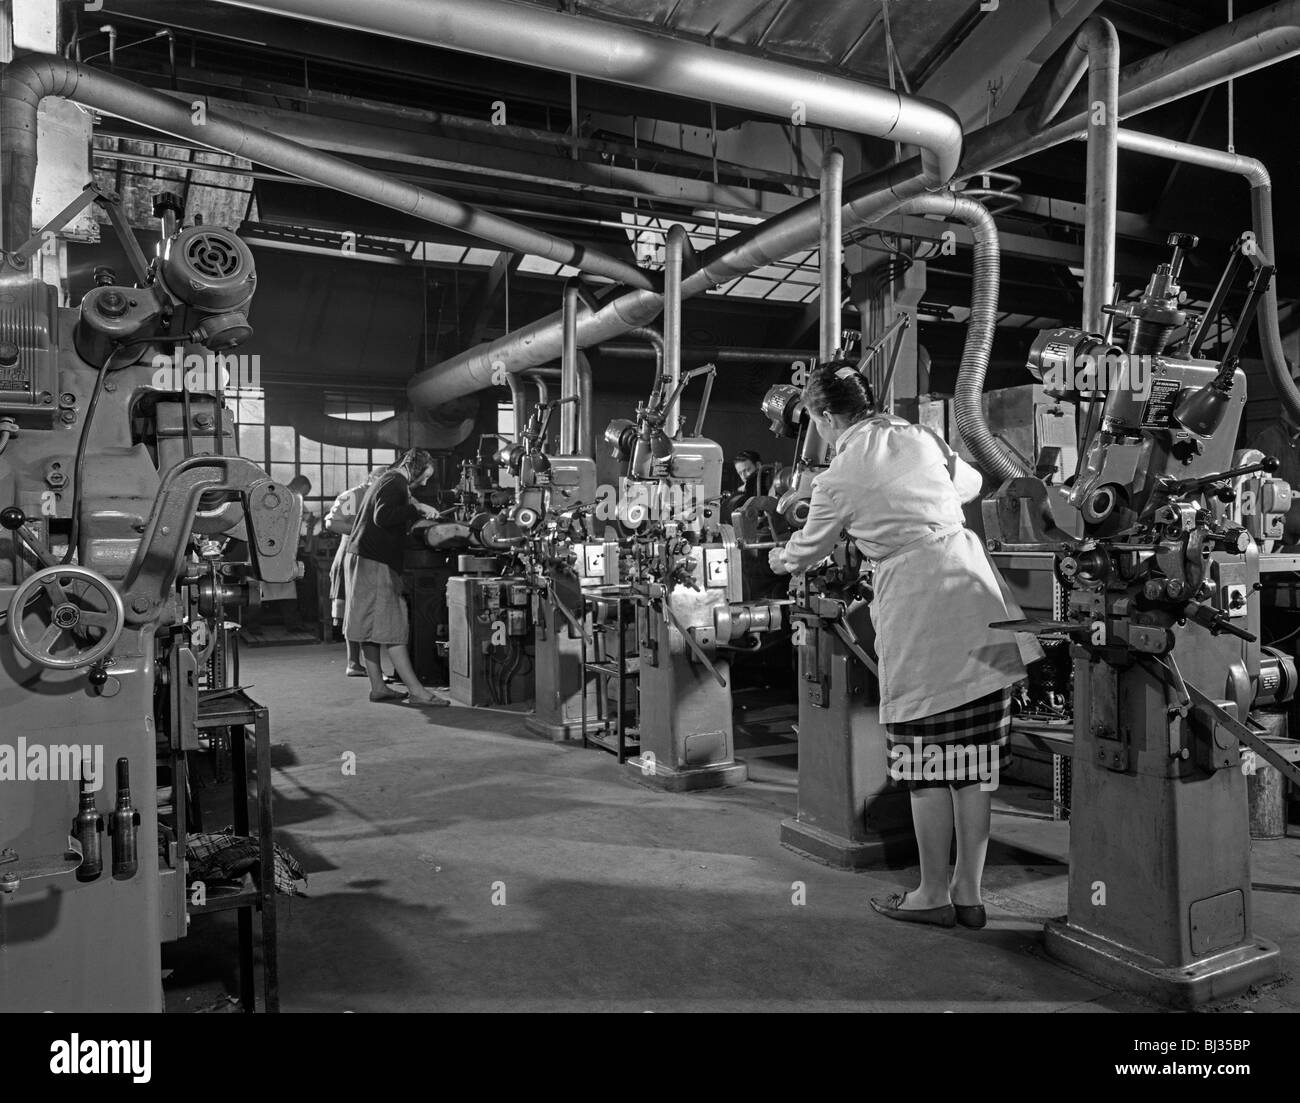 Female workers sharpening saw blades, Sheffield, South Yorkshire, 1963. Artist: Michael Walters - Stock Image